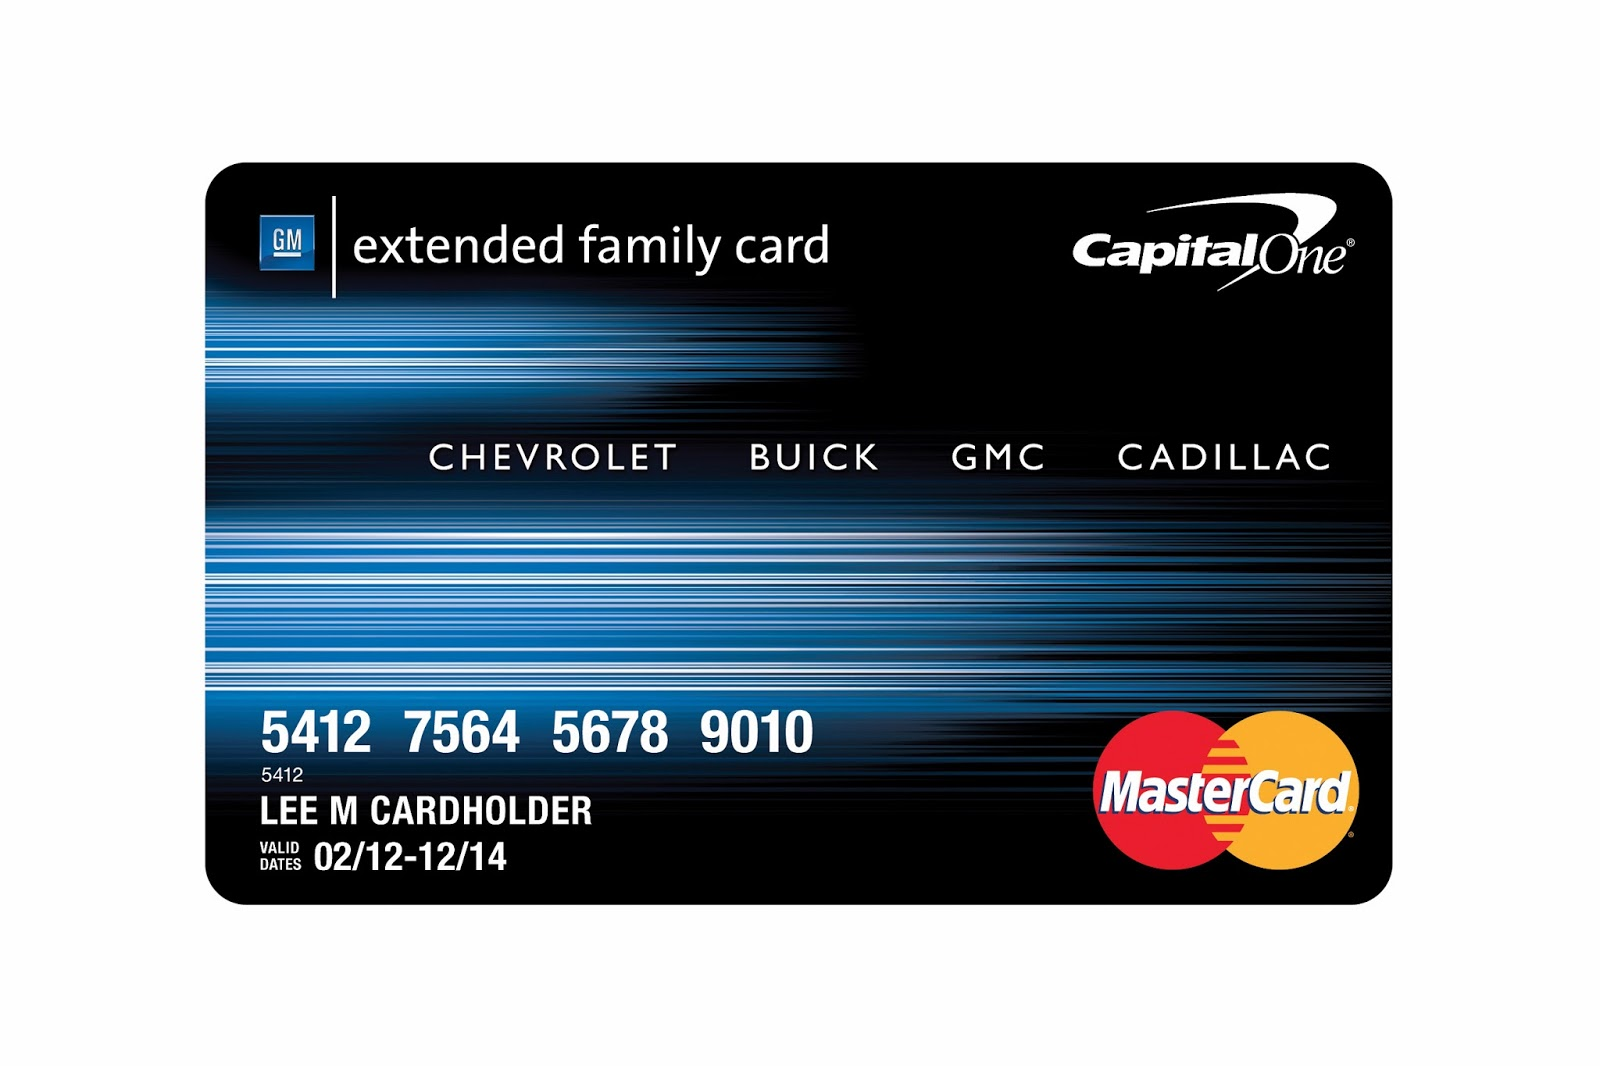 gm capital one credit card